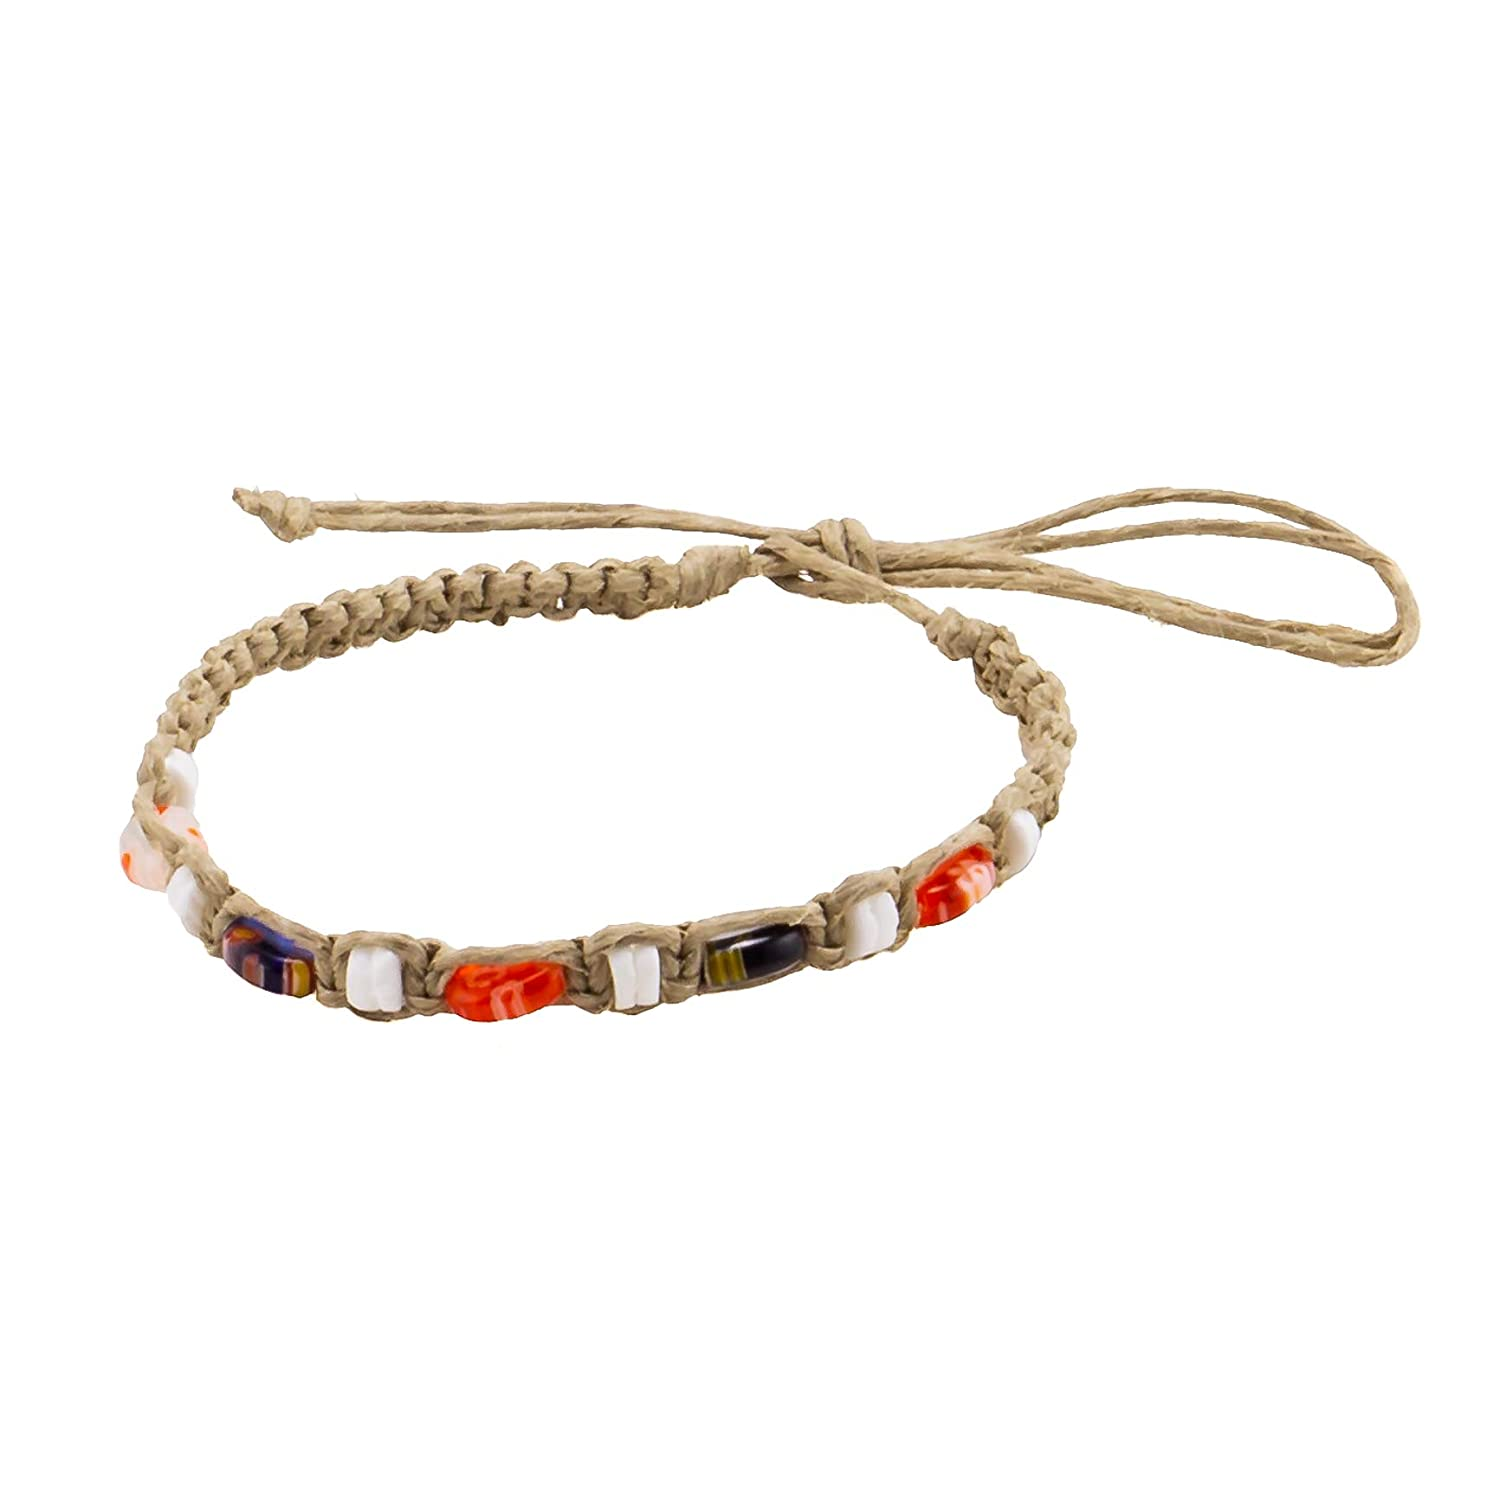 BlueRica Hemp Anklet Bracelet with Puka Shell Beads /& Multicolor Murano Glass Beads